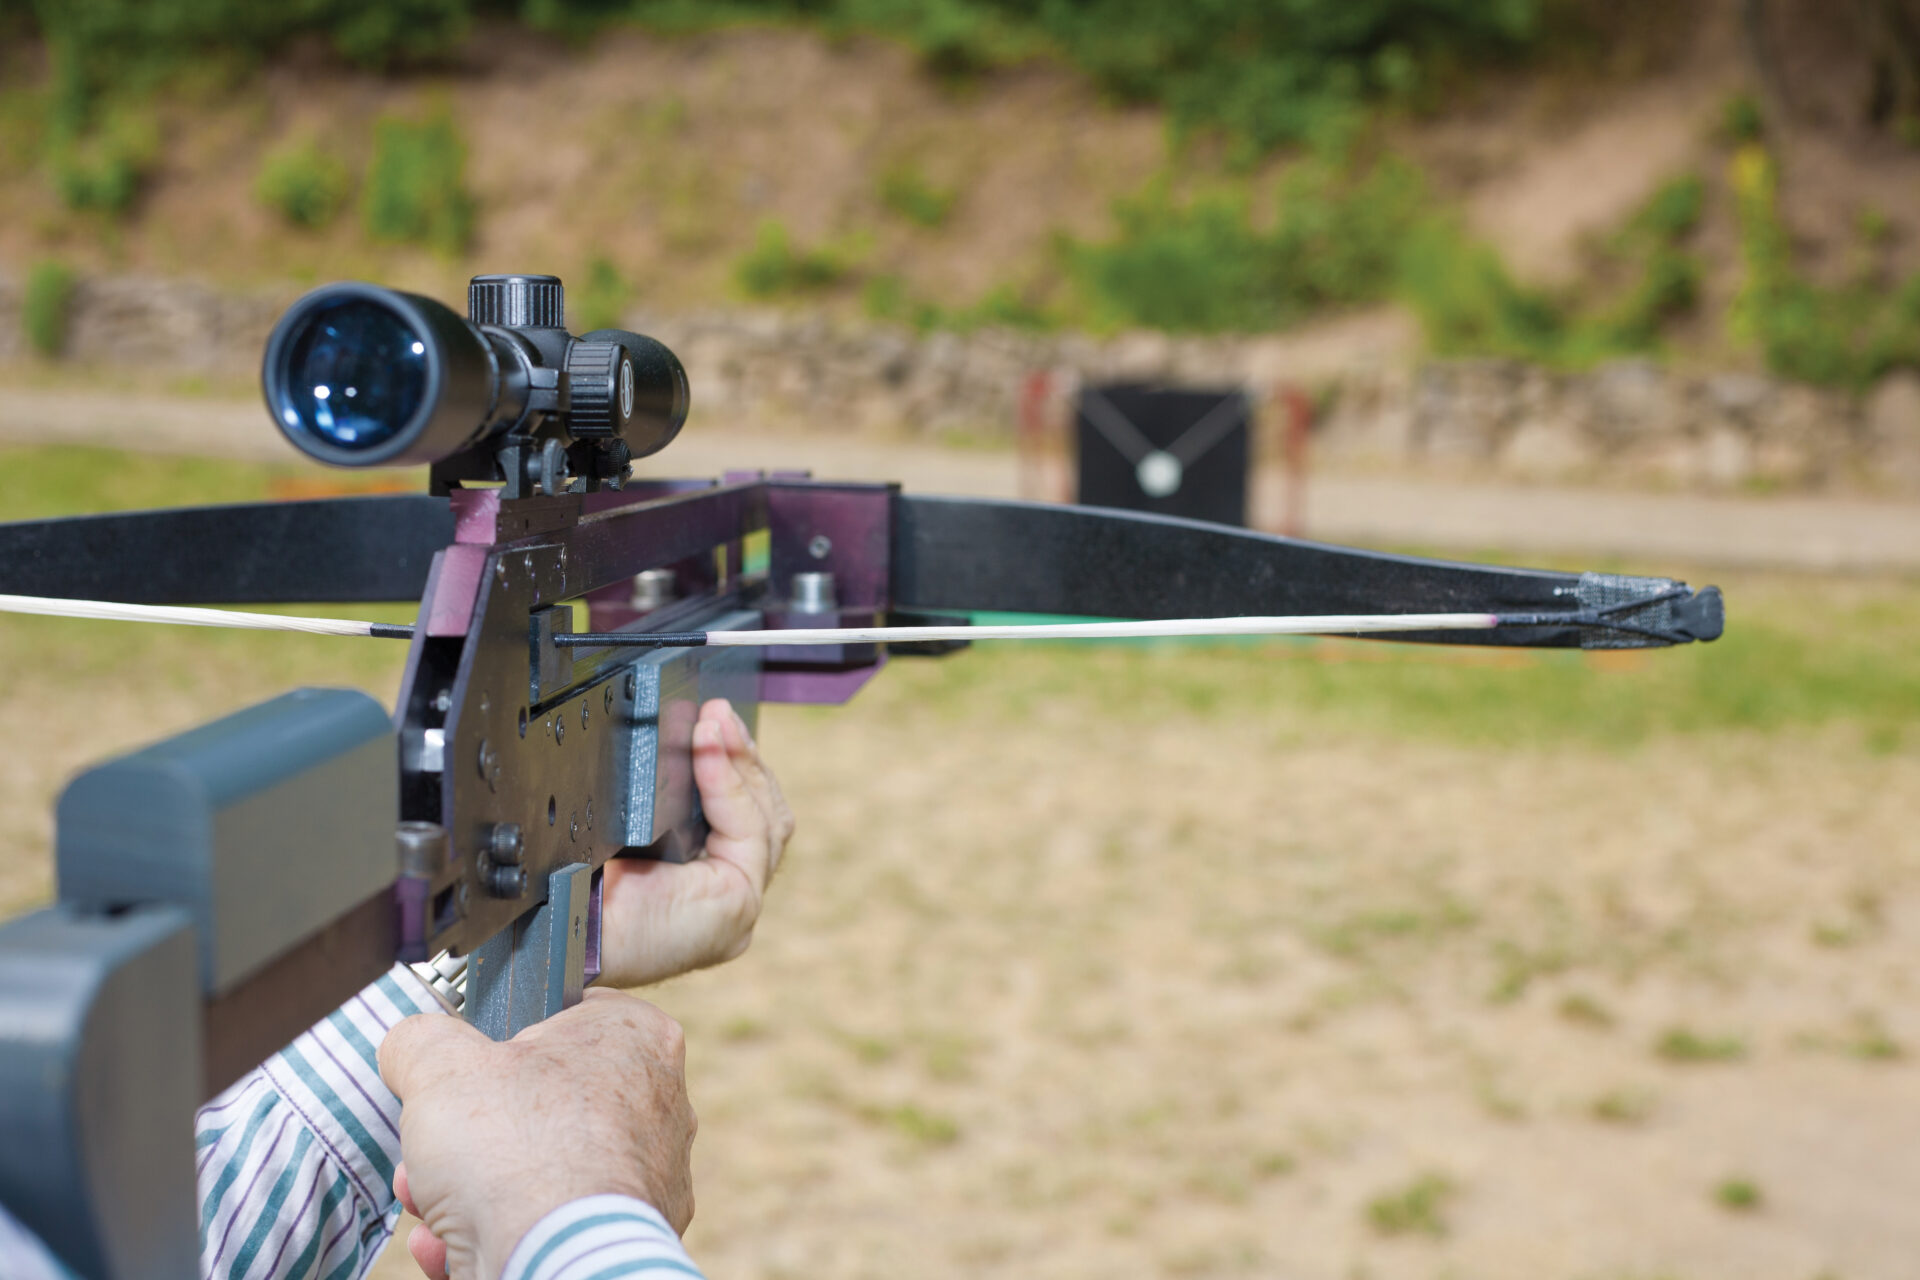 The author argues that crossbows to have their place in the hunting world, and that scopes on crossbows lead to ethical kills.